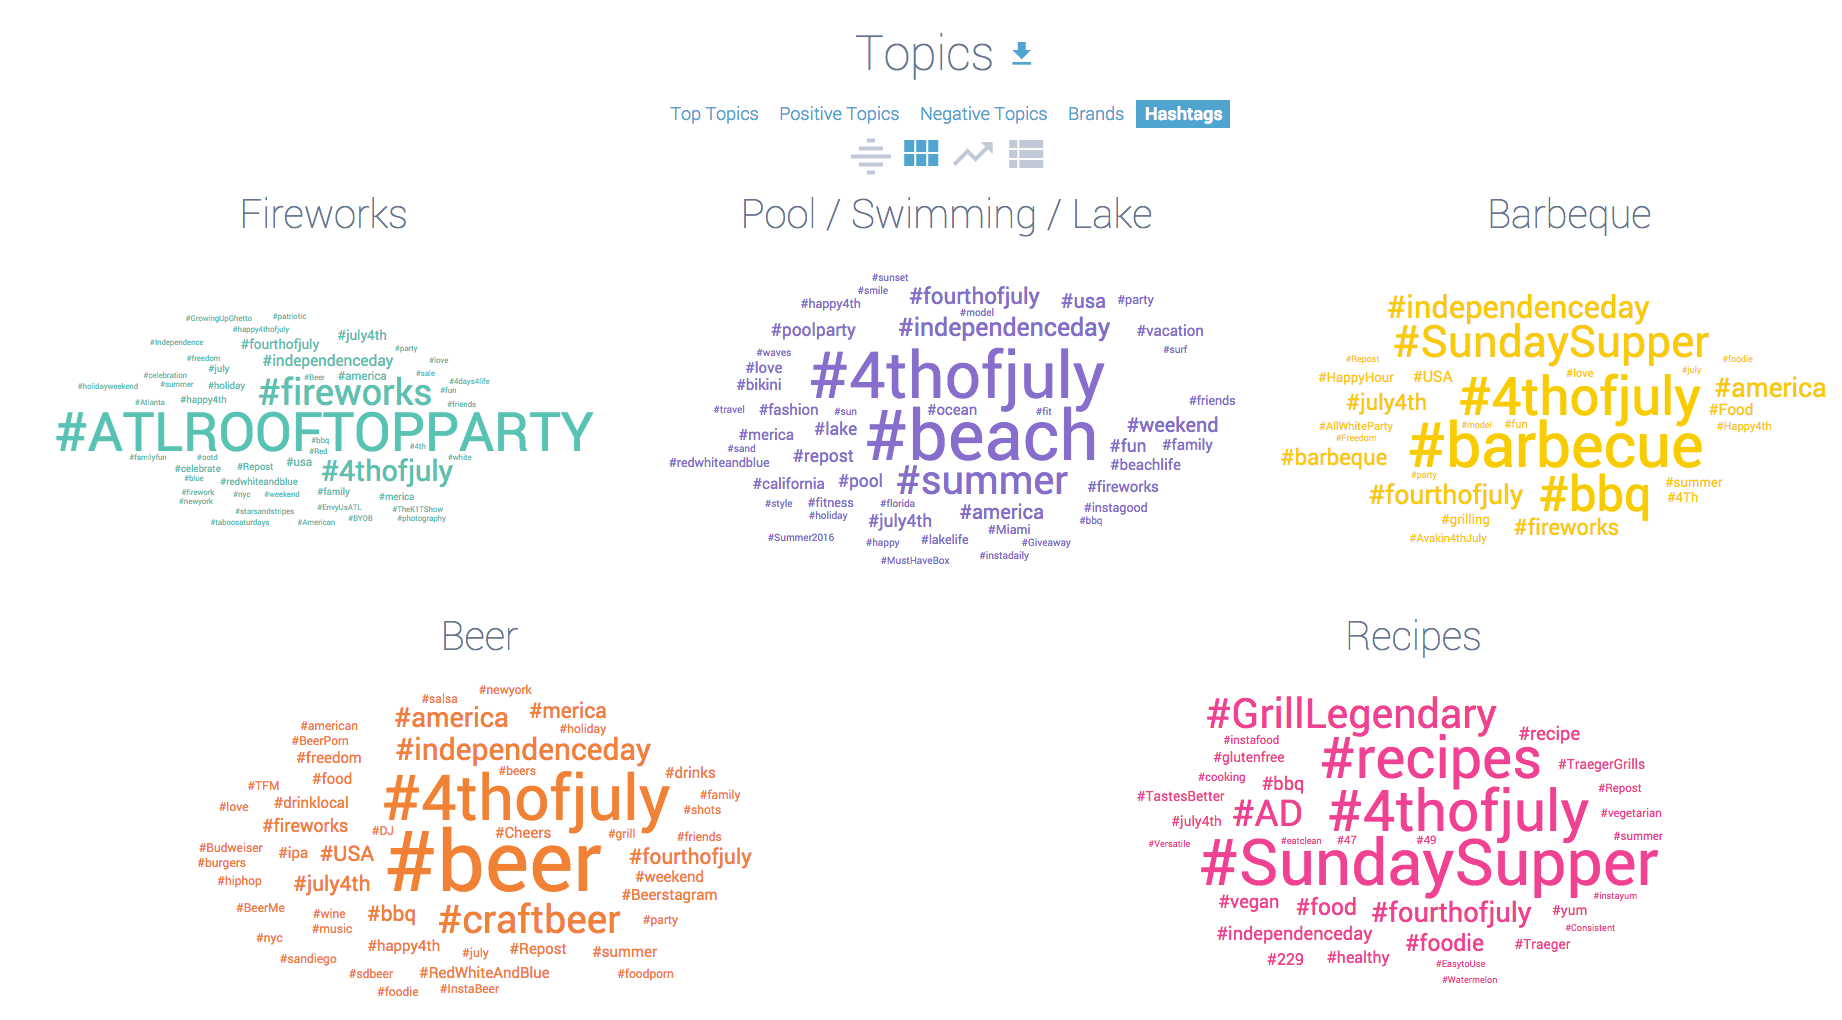 4th of July topic cloud hashtags Screen Shot 2017-06-20 at 10.26.25 AM.png